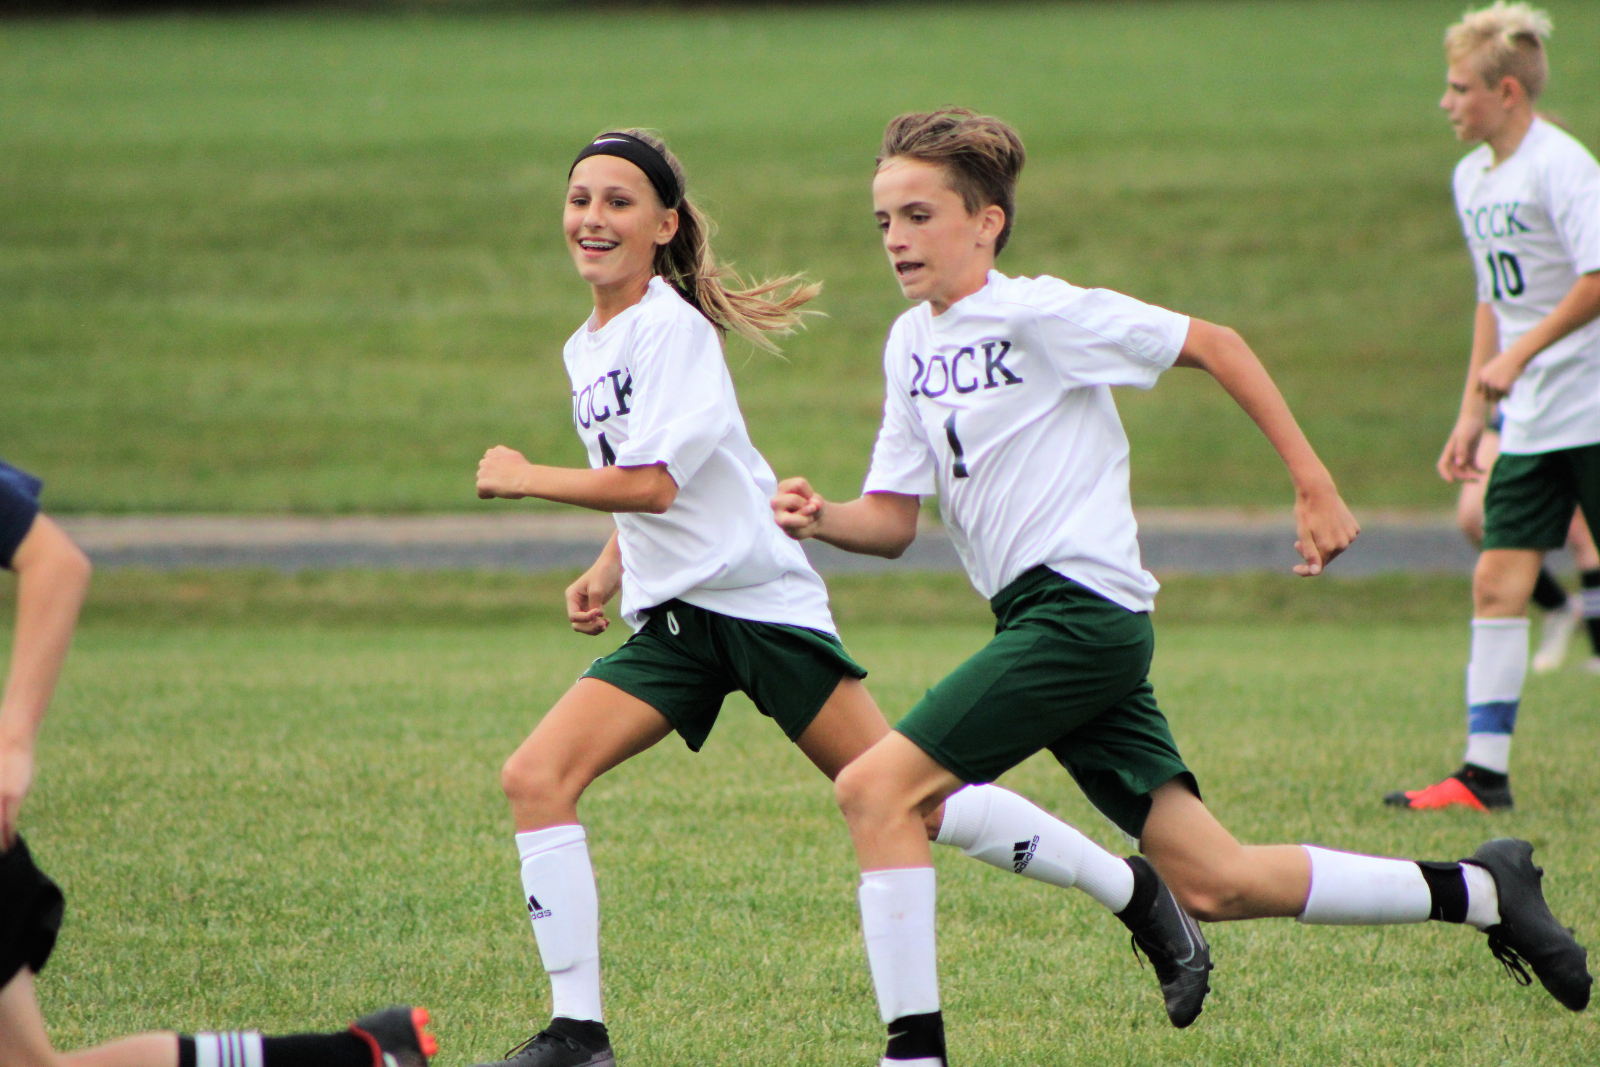 Middle School Varsity Soccer vs. Penndale